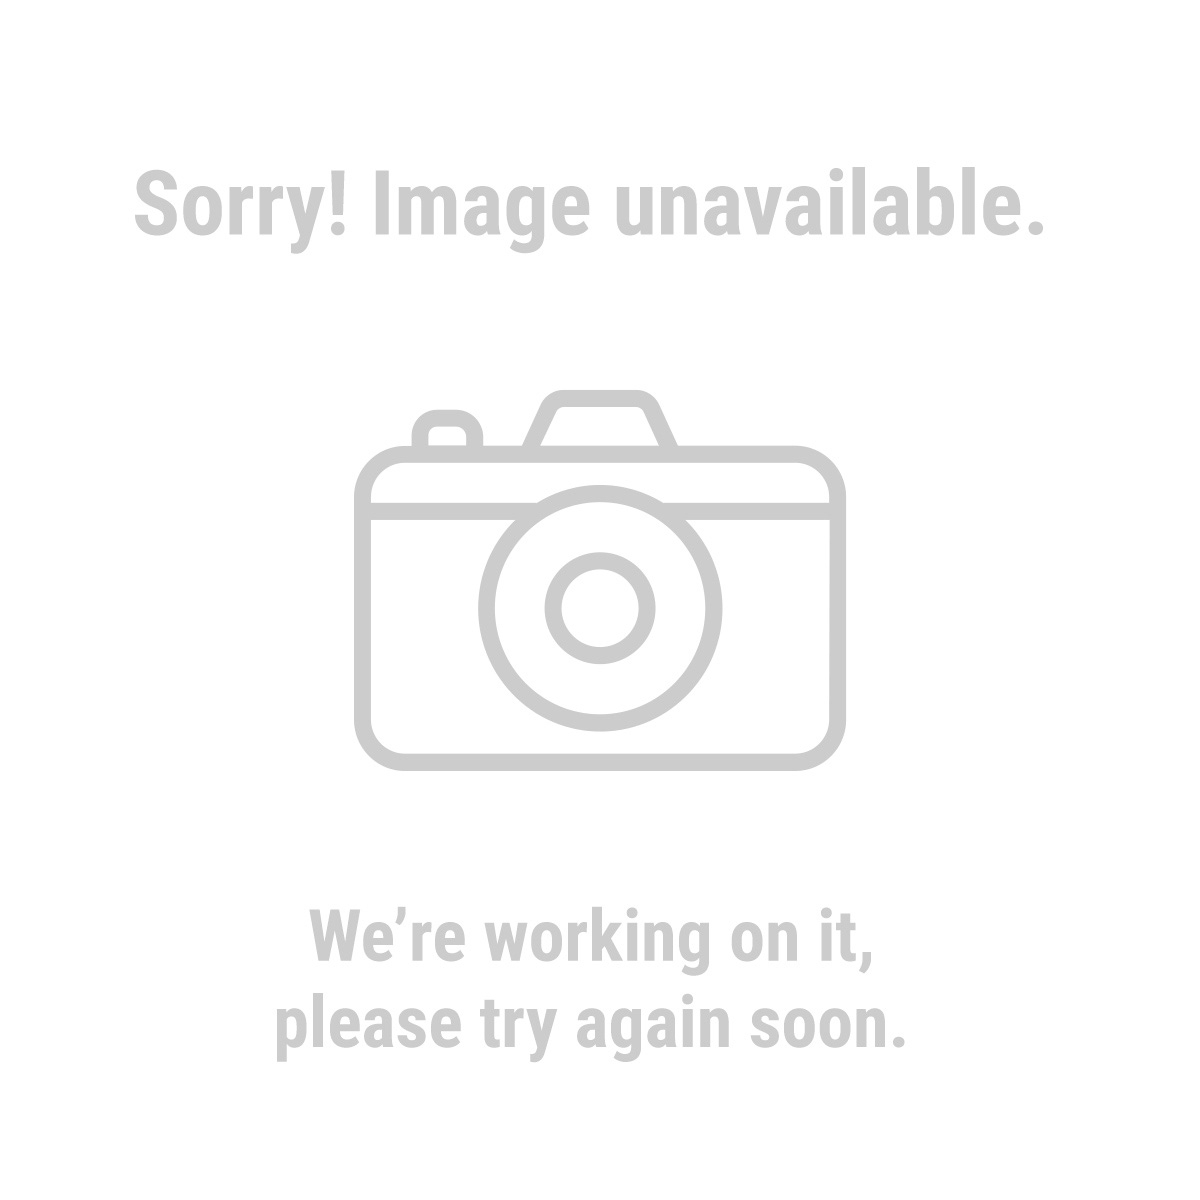 ShelterLogic 68764 10 ft. x 10 ft. Pop-Up Canopy with Green Cover